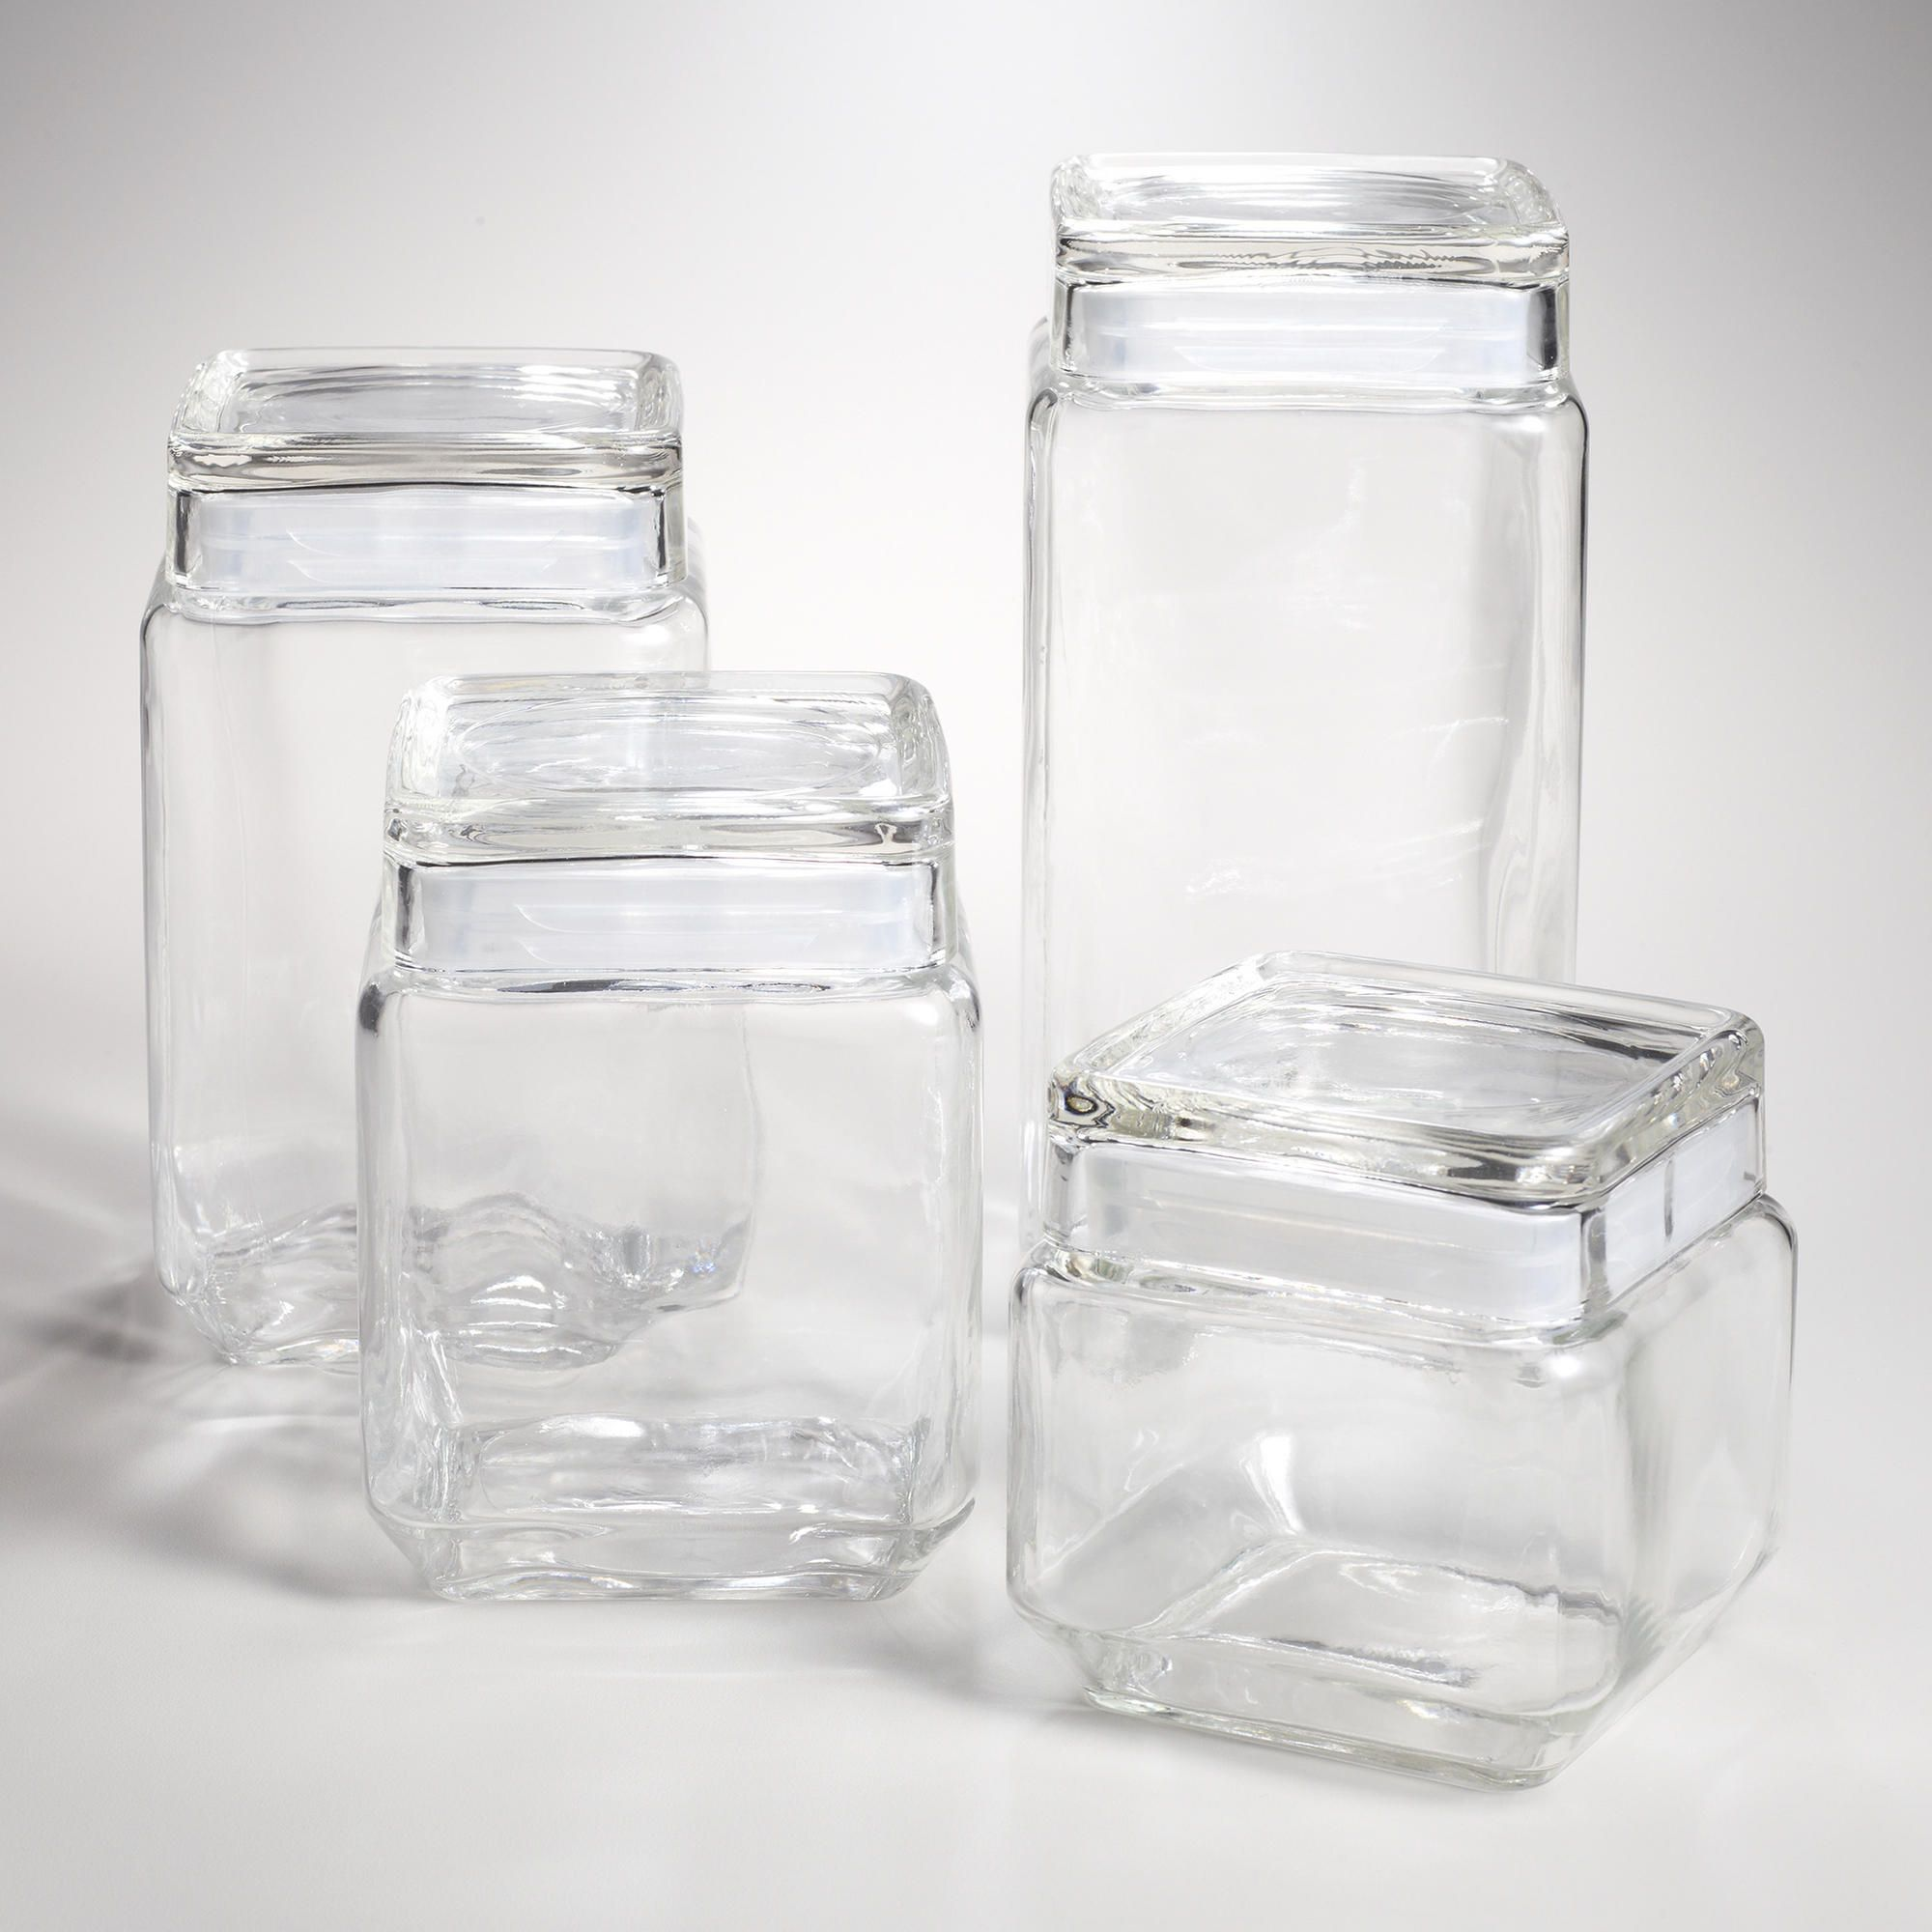 Black Kitchen Storage Jars Stackable Square Glass Jars With Lids Crafting Jars And Markers